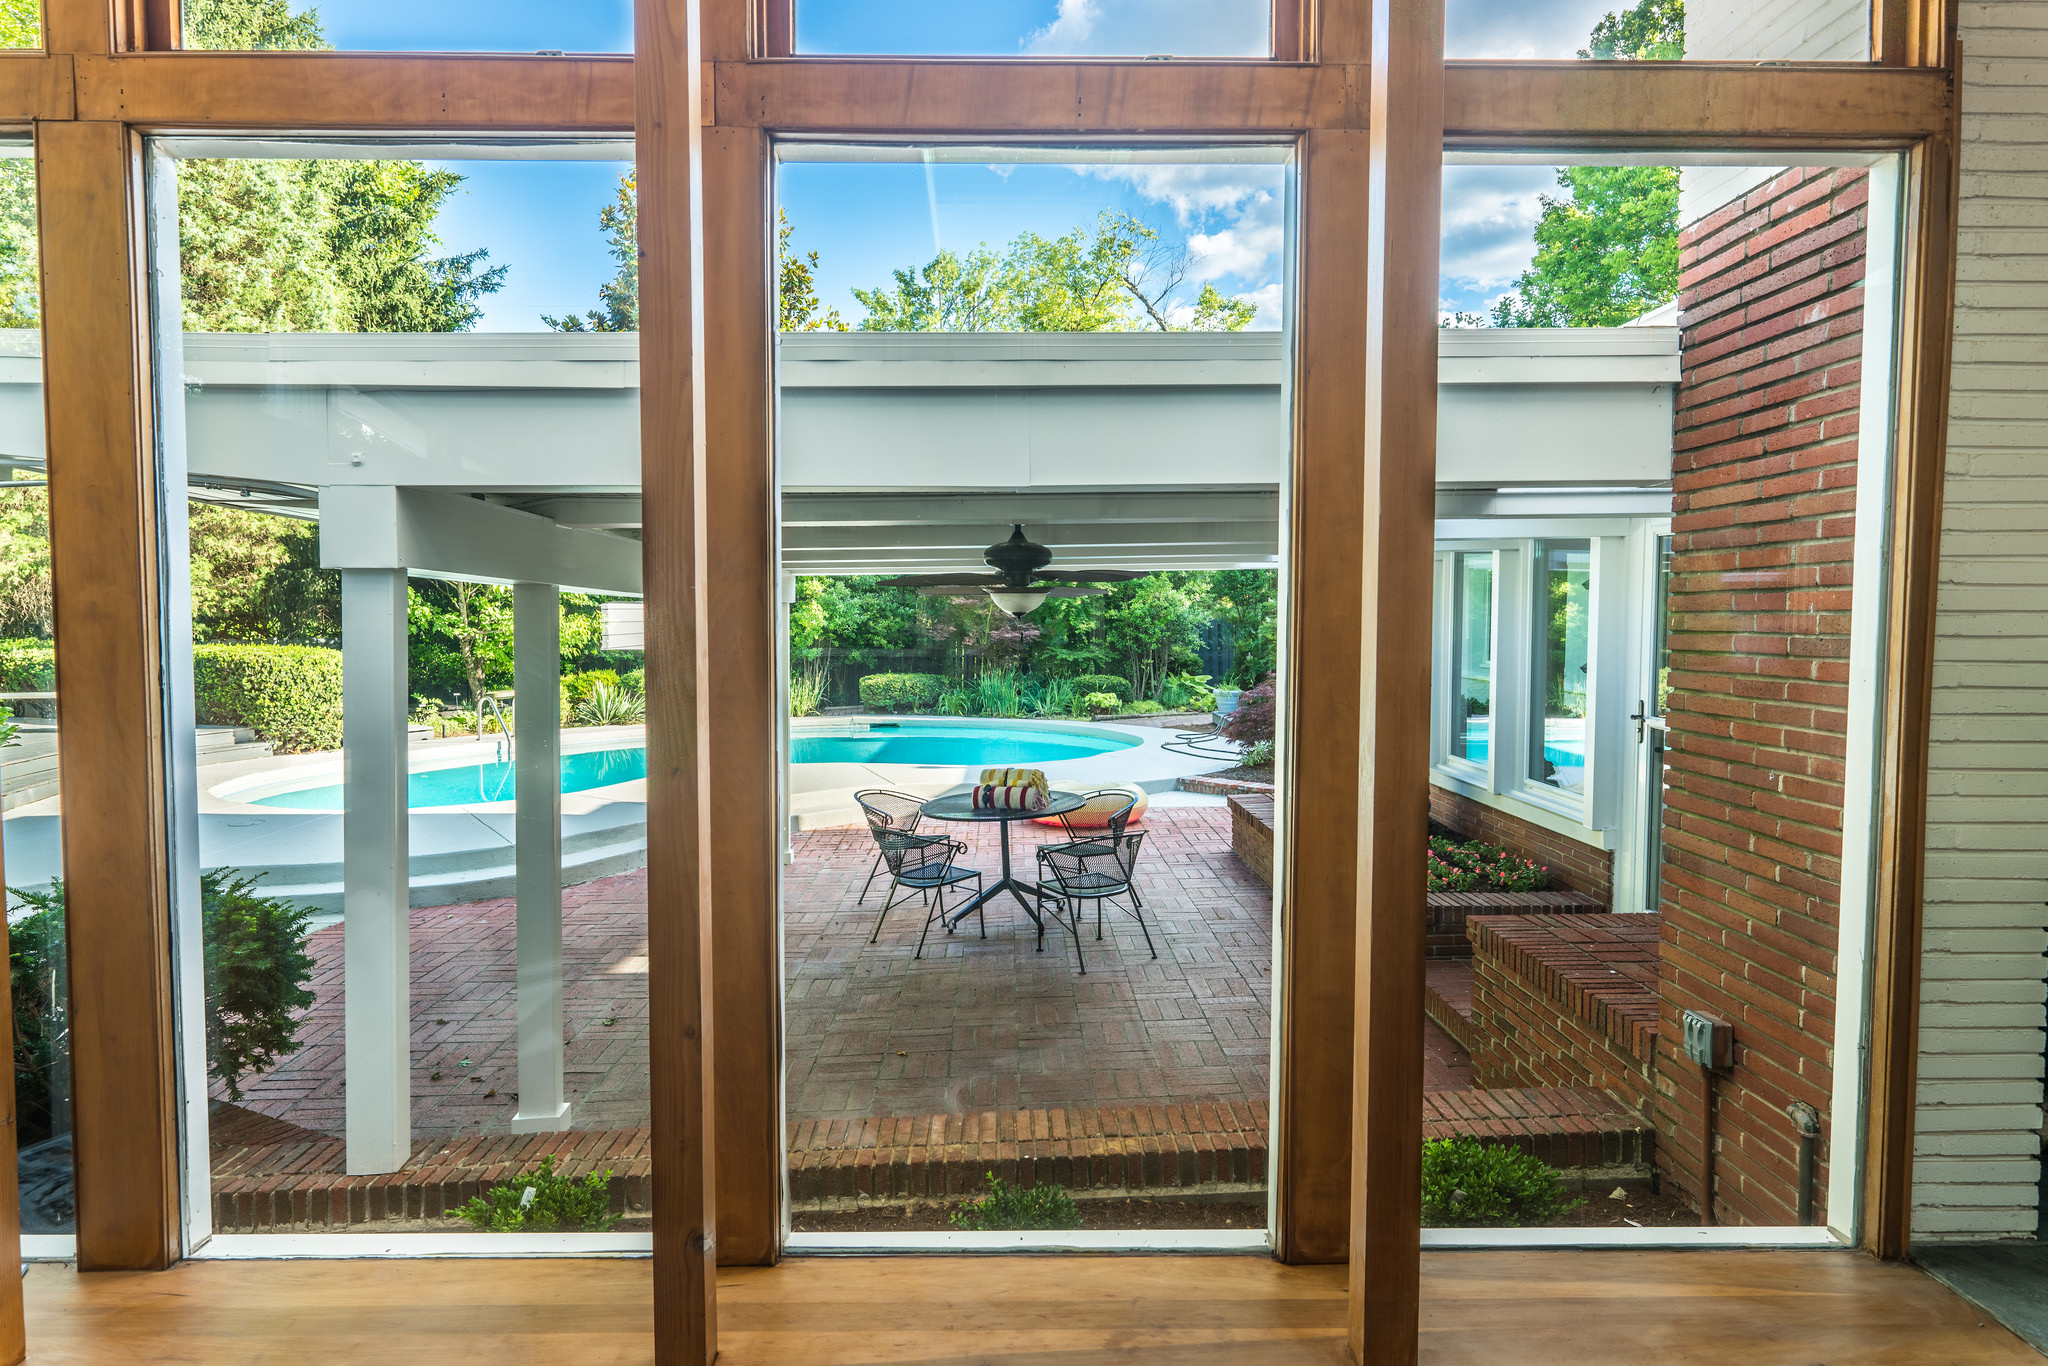 View to the covered patio and pool